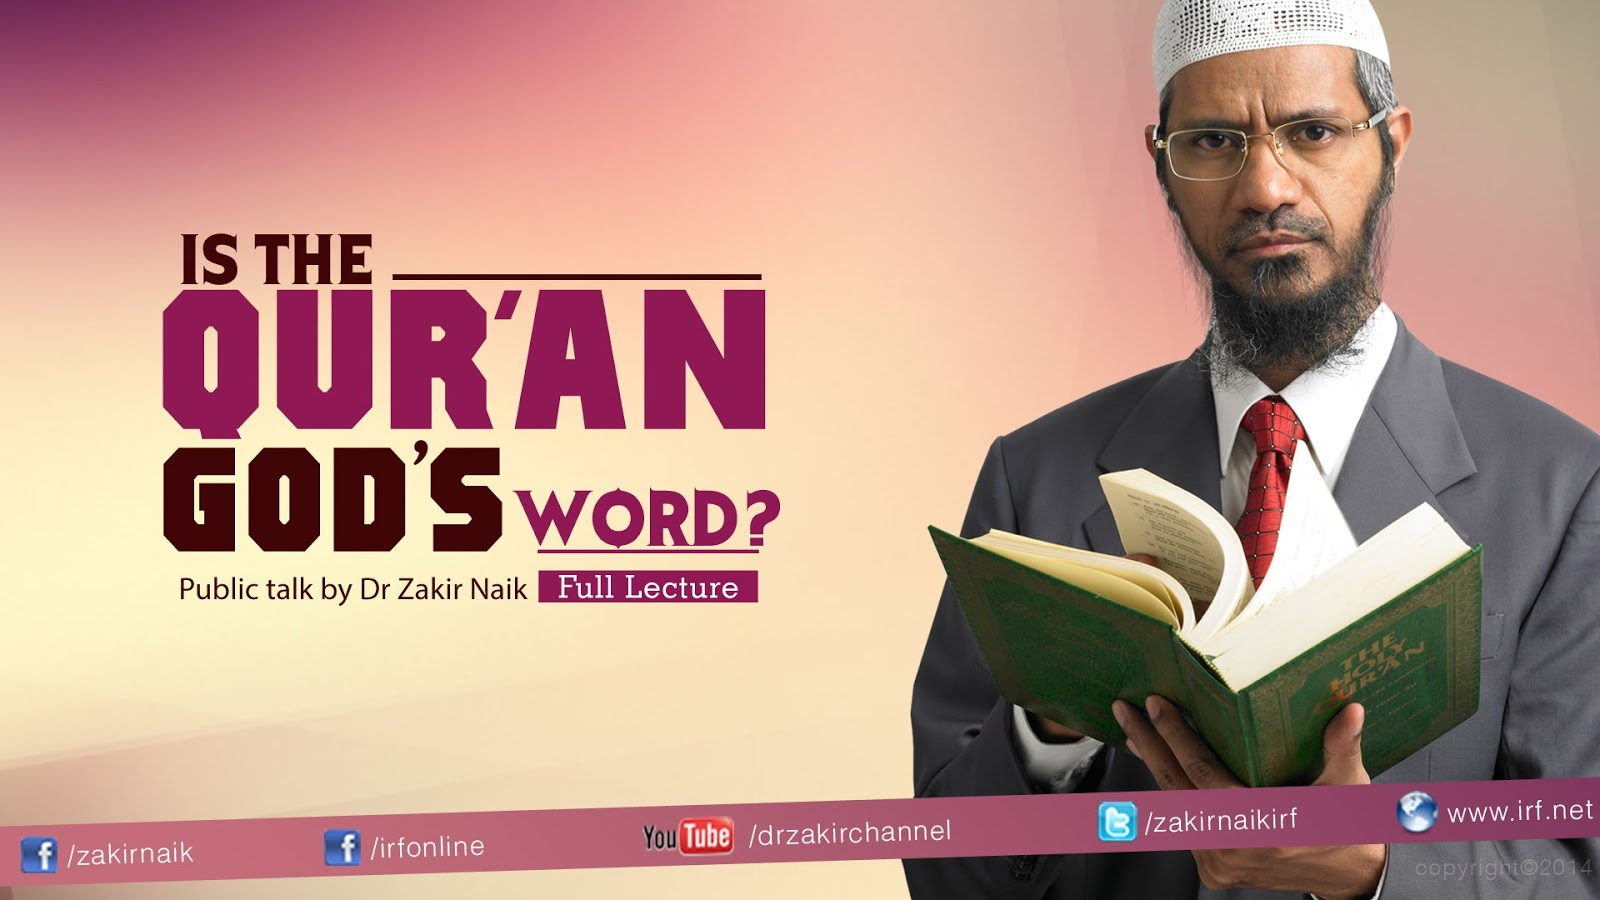 Islam for Our Solutions: LIST OF ALL VIDEO LECTURES BY DR ZAKIR NAIK